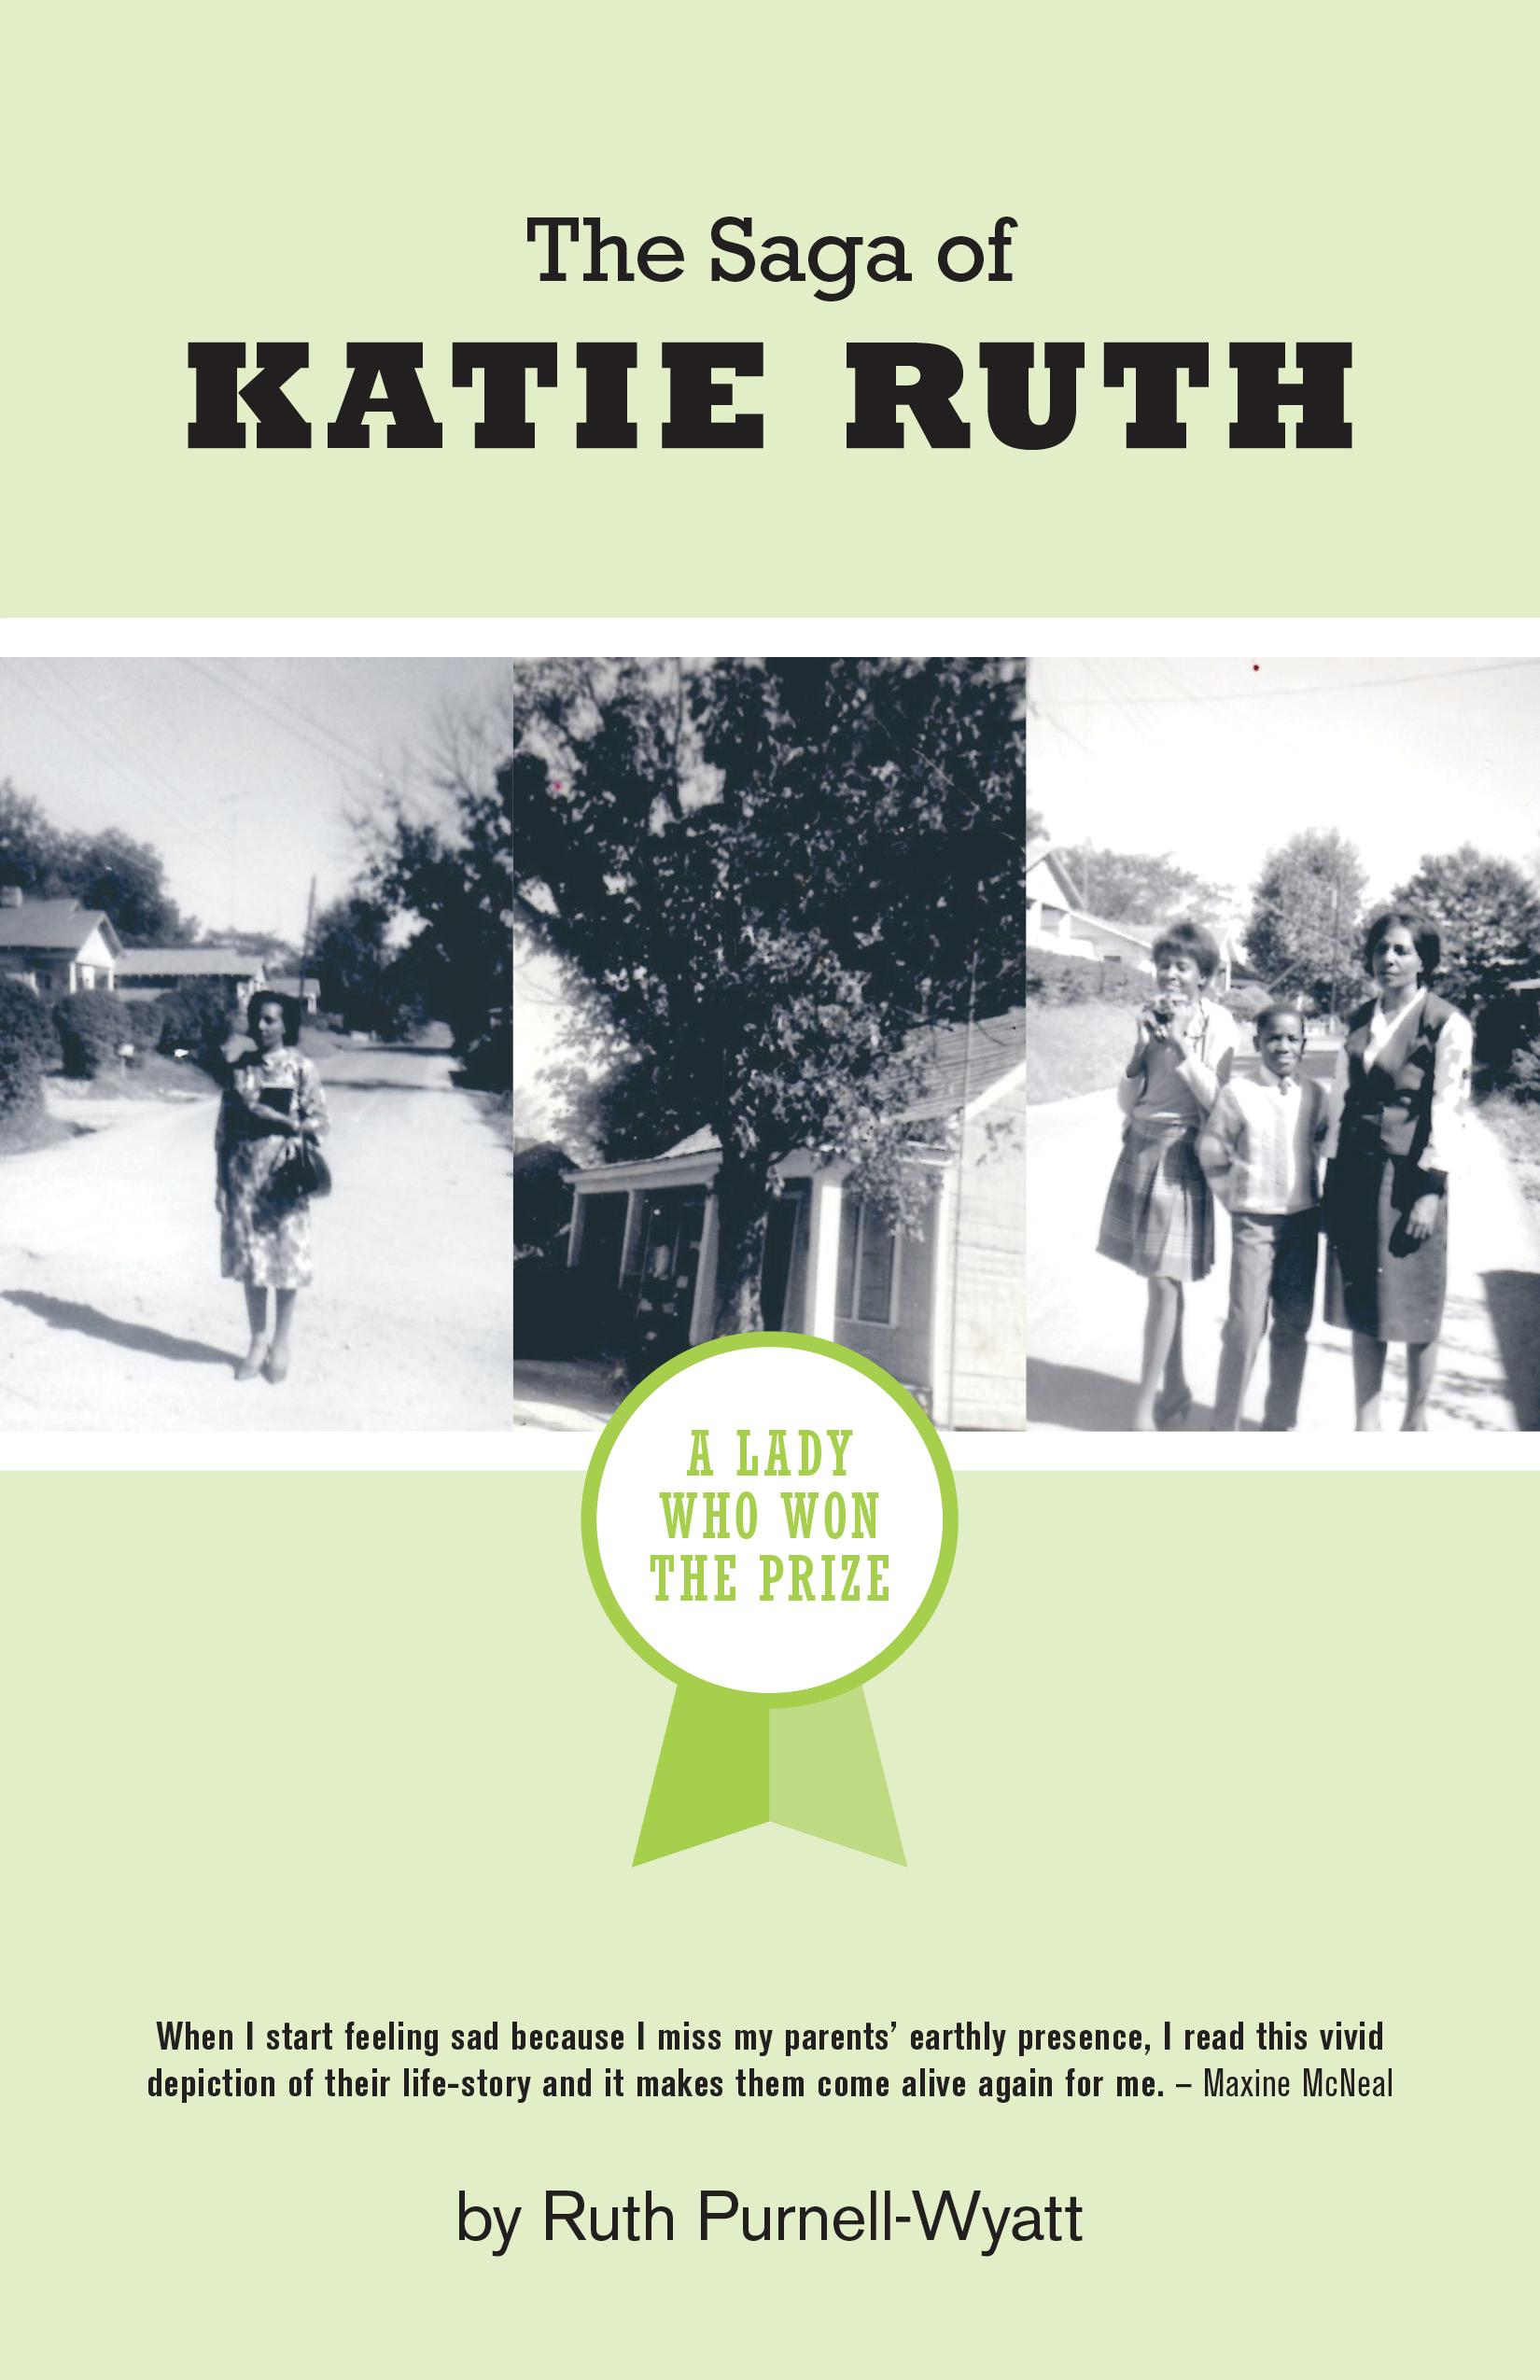 The Saga of Katie Ruth: A Lady Who Won The Prize